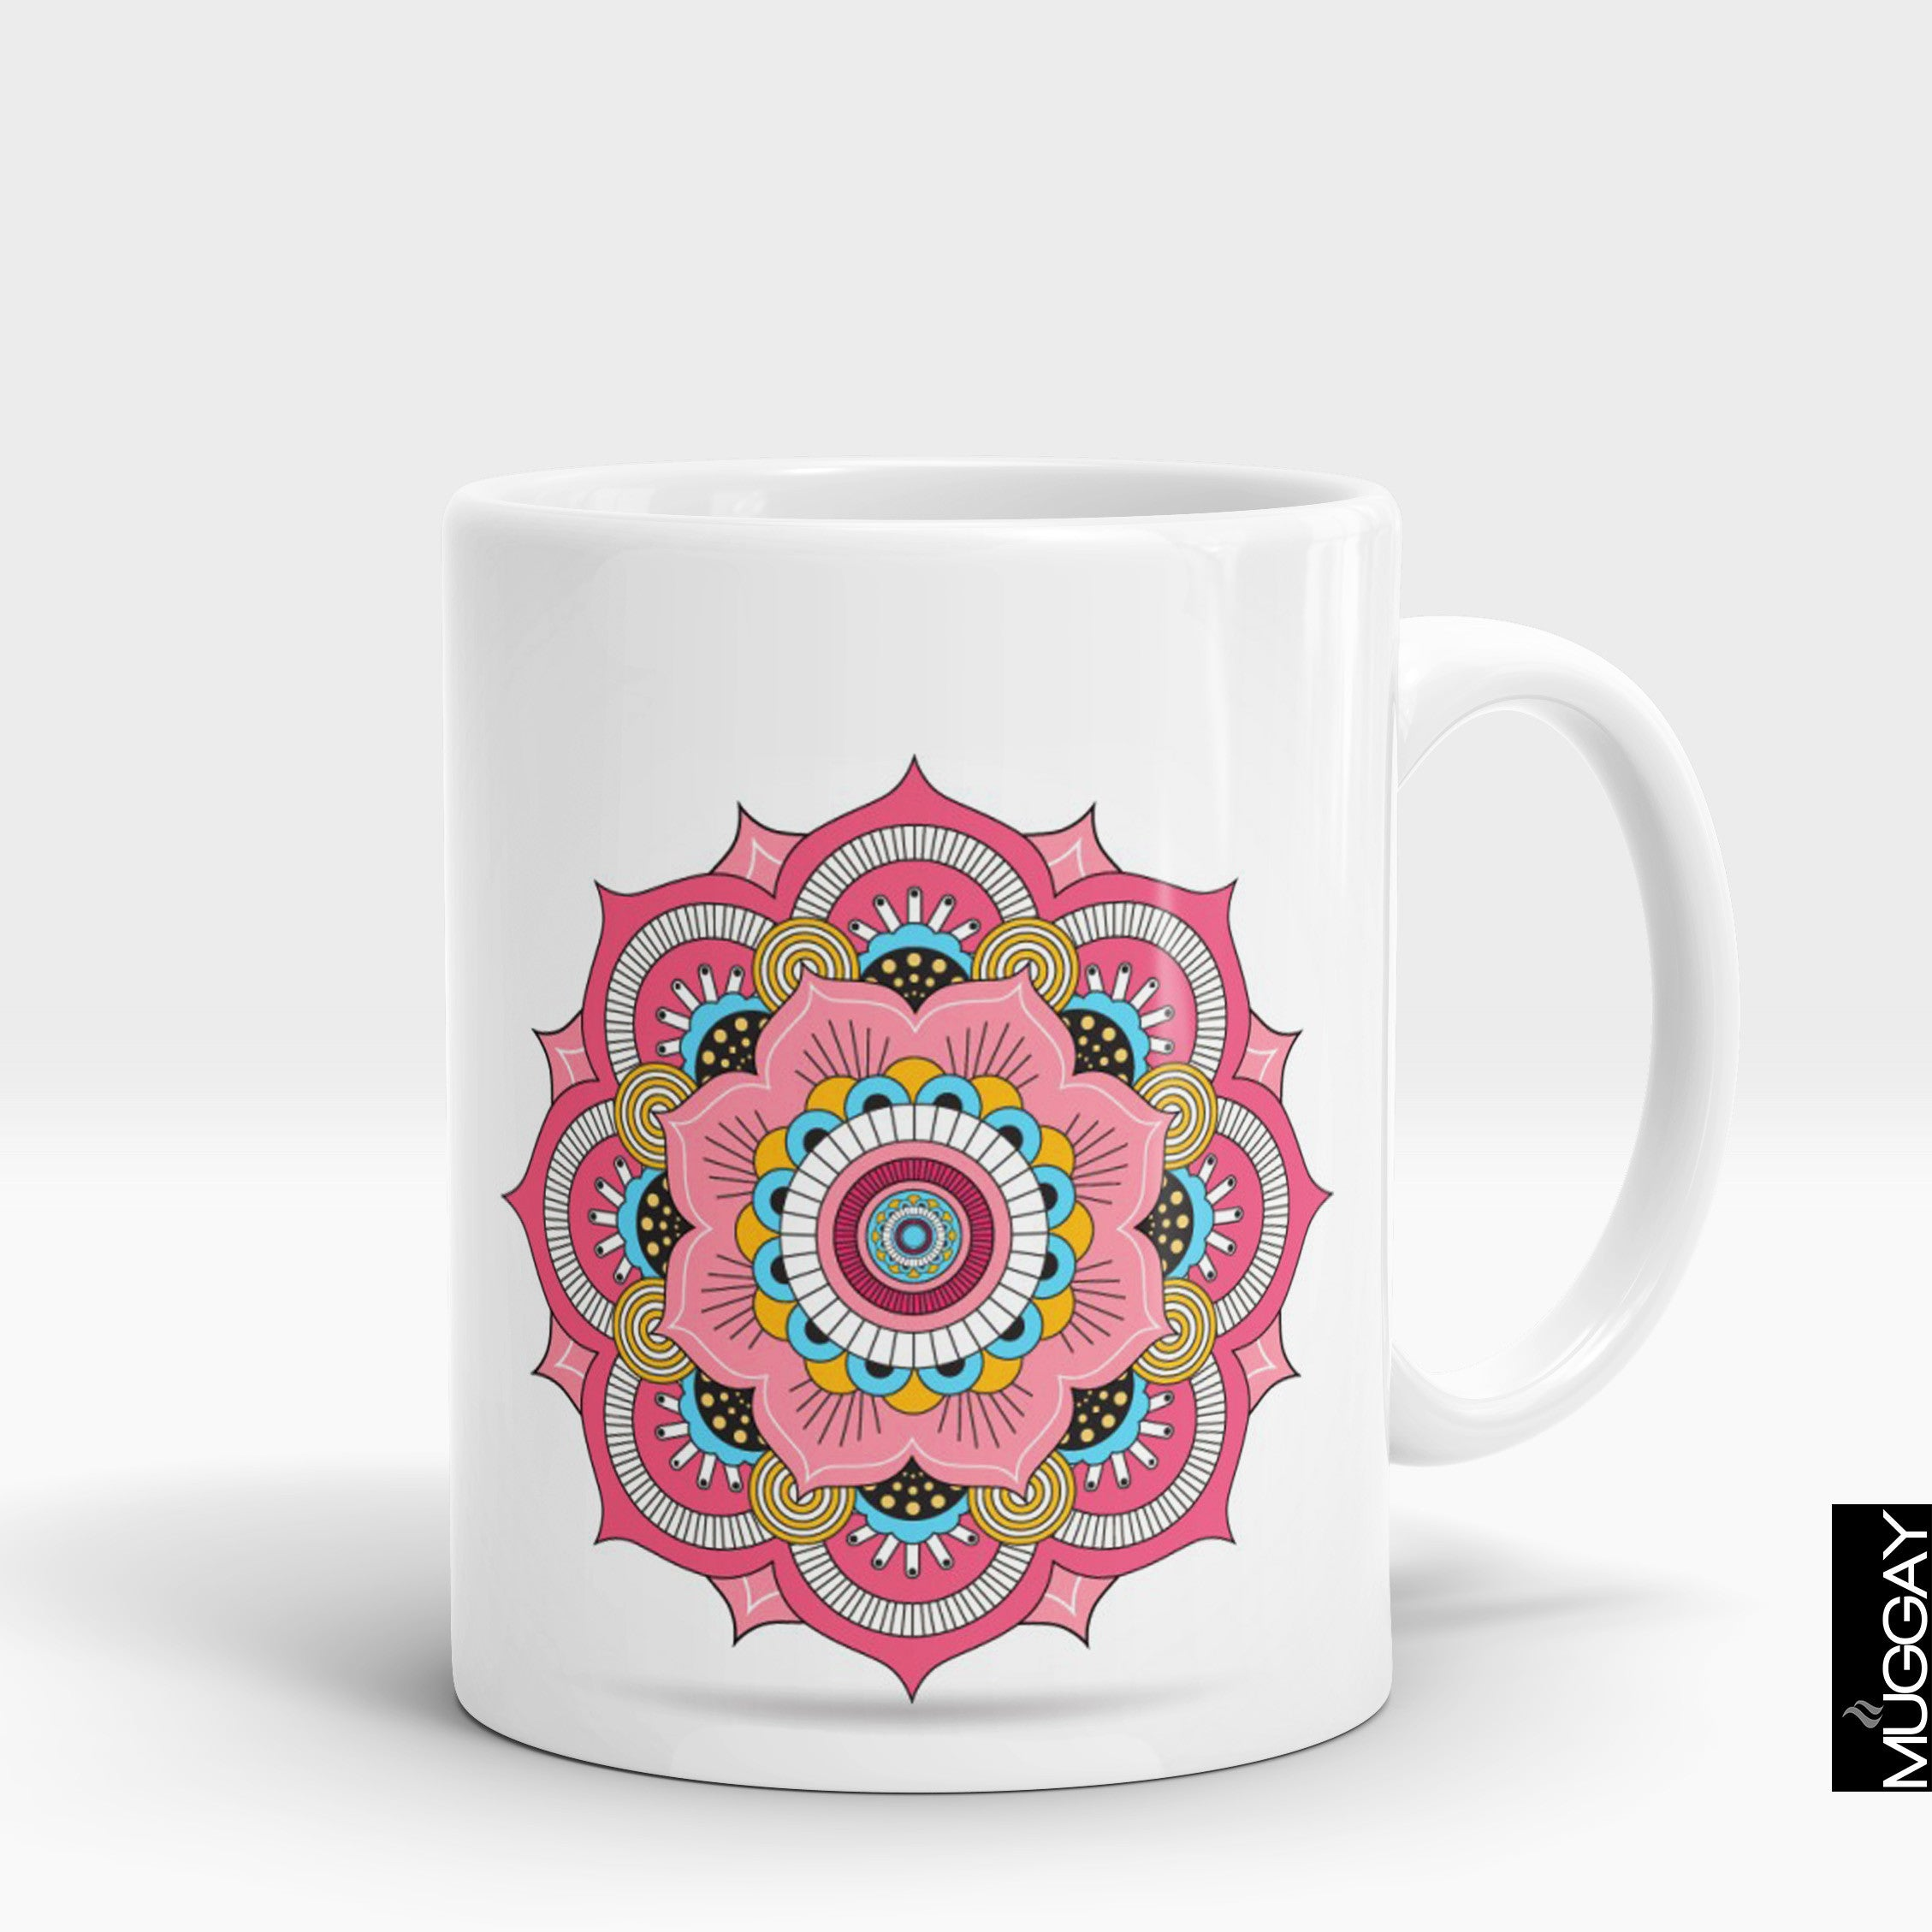 Mandala art mugs -9